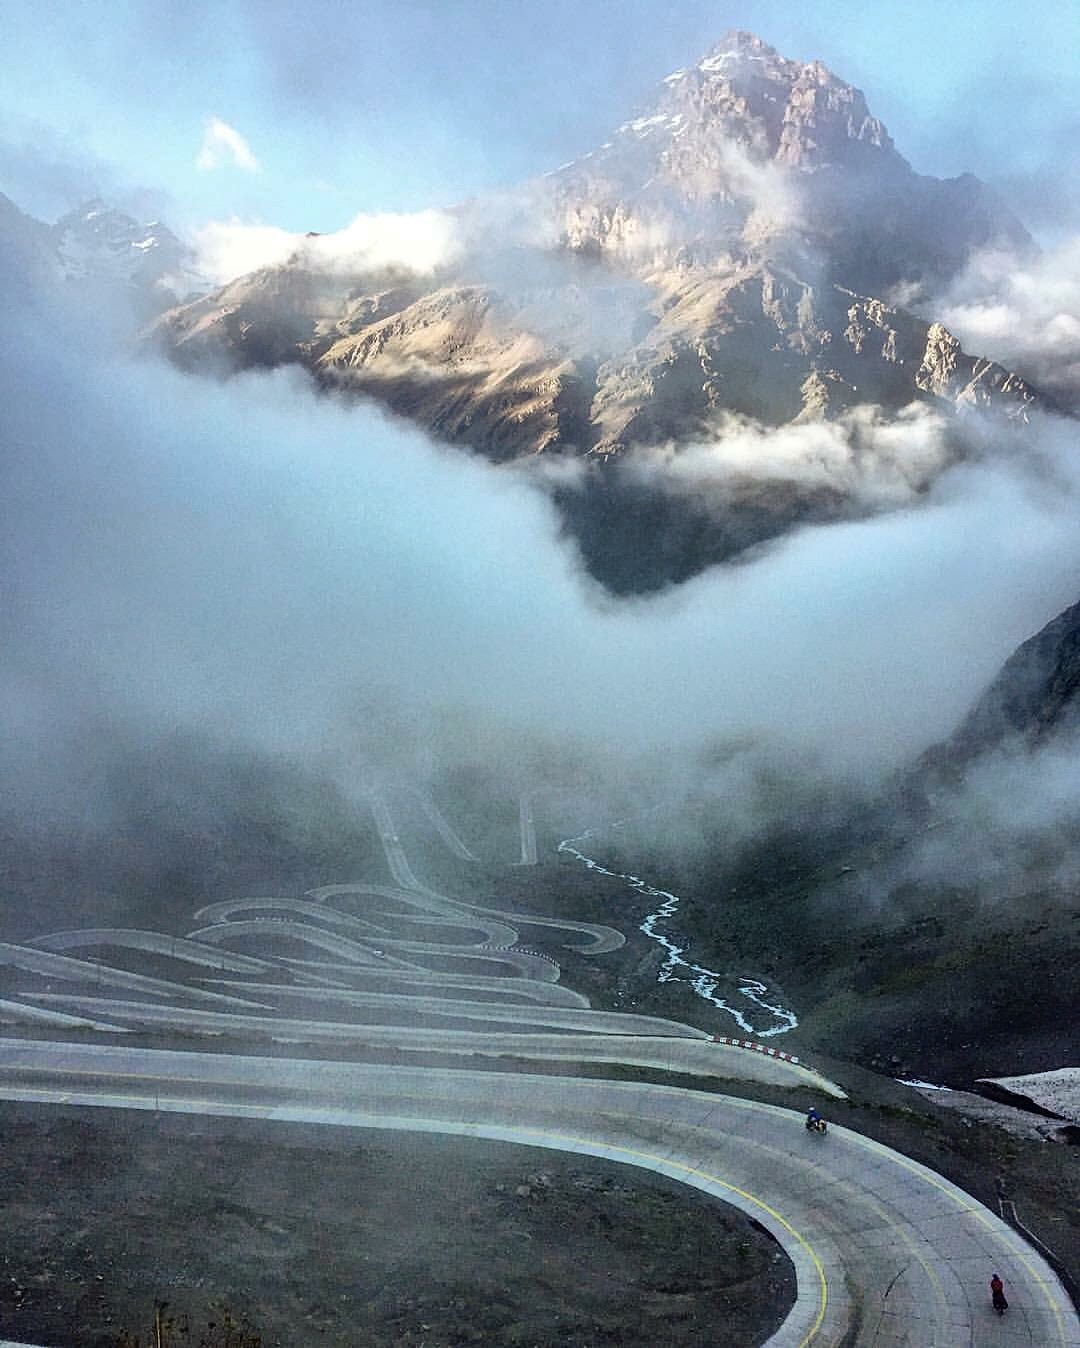 Cycling the Andes into Argentina.